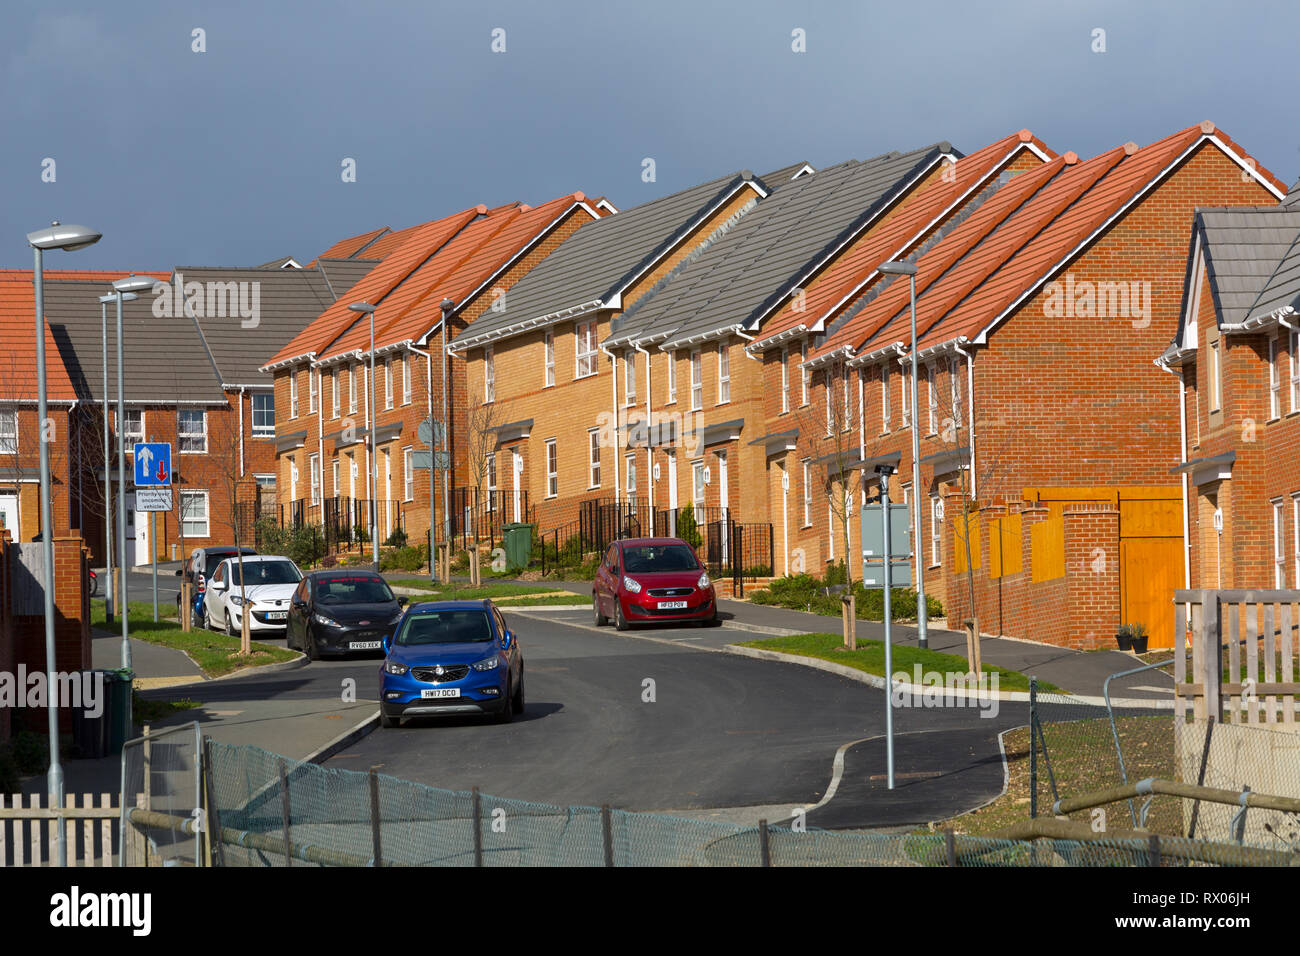 New,Build, green,belt,encroachment, terrace,street,road, timber,framed, low, Reducing, carbon emissions , carbon,footprint, energy, tile,tiled, field, - Stock Image